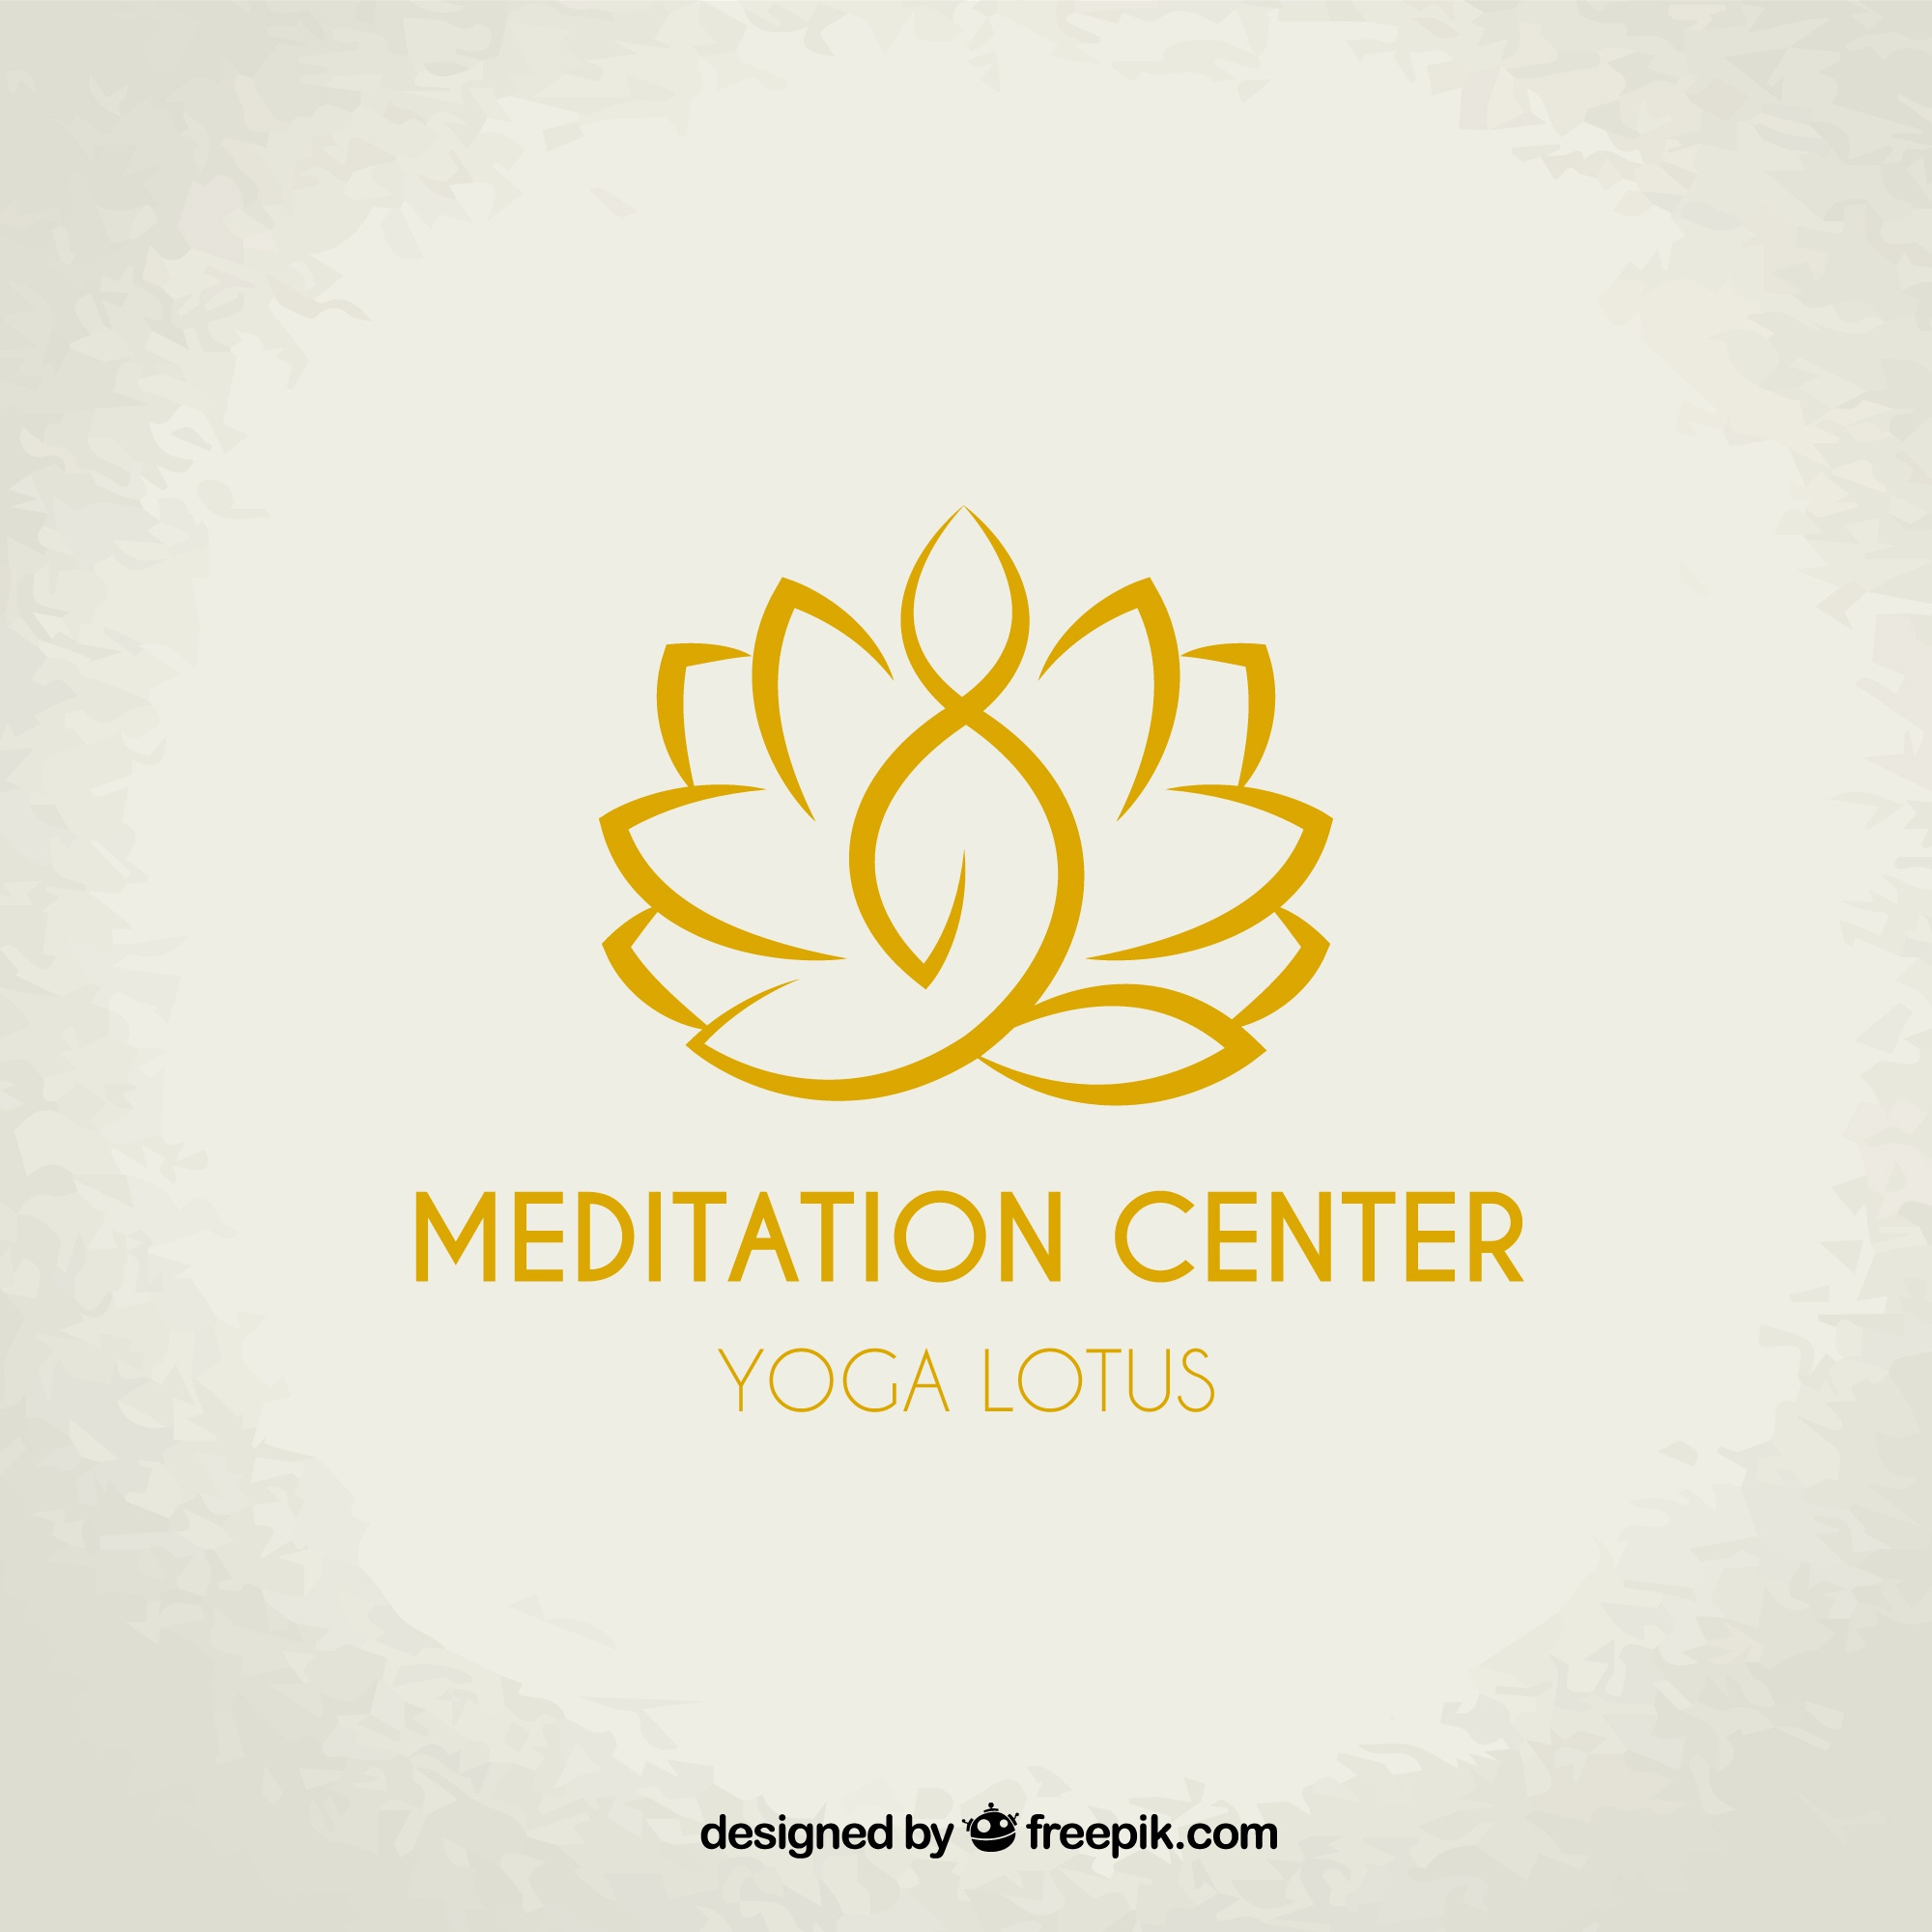 Meditation center logo